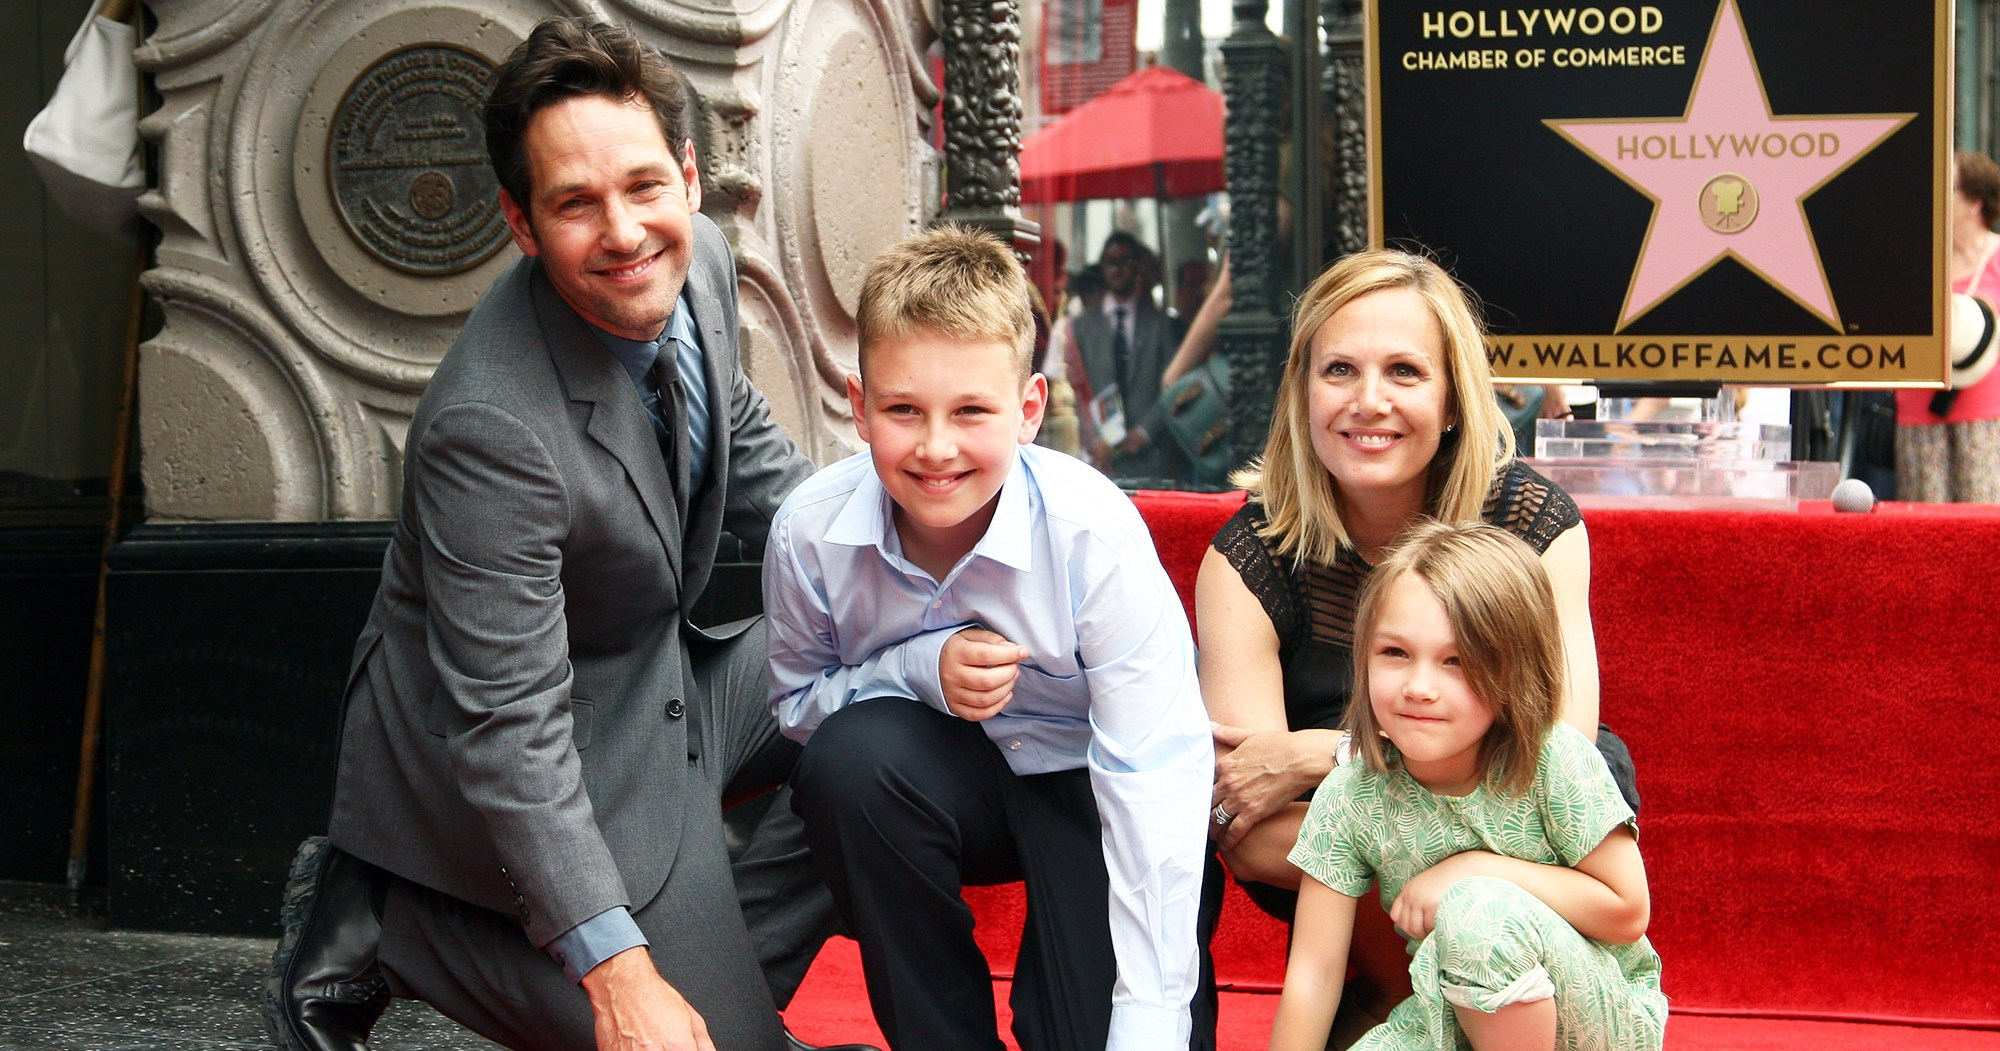 Paul Rudd Has a Very Sweet Holiday Tradition With His Family